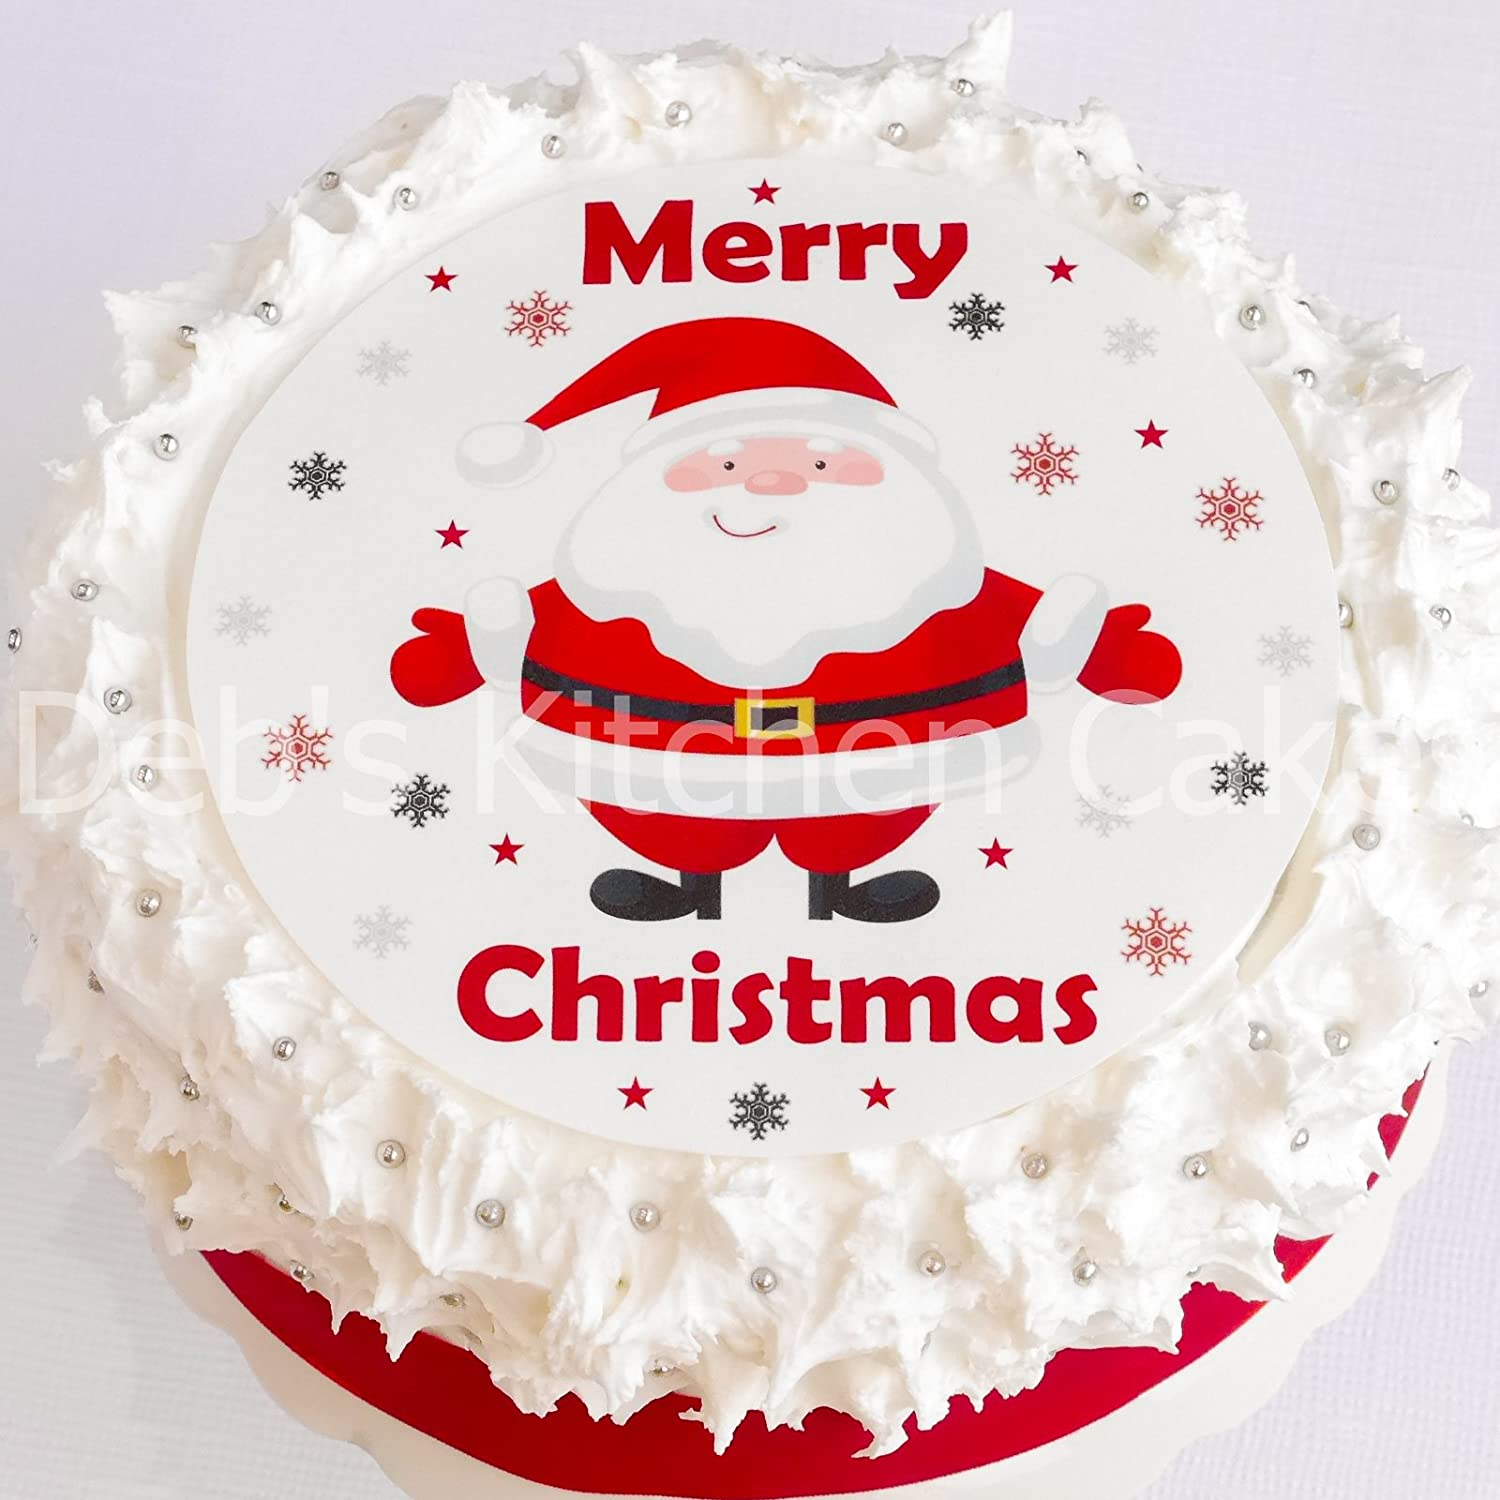 Christmas Cake.Christmas Cake Topper Santa Cake Decoration Edible Wafer Round 7 5 19cm